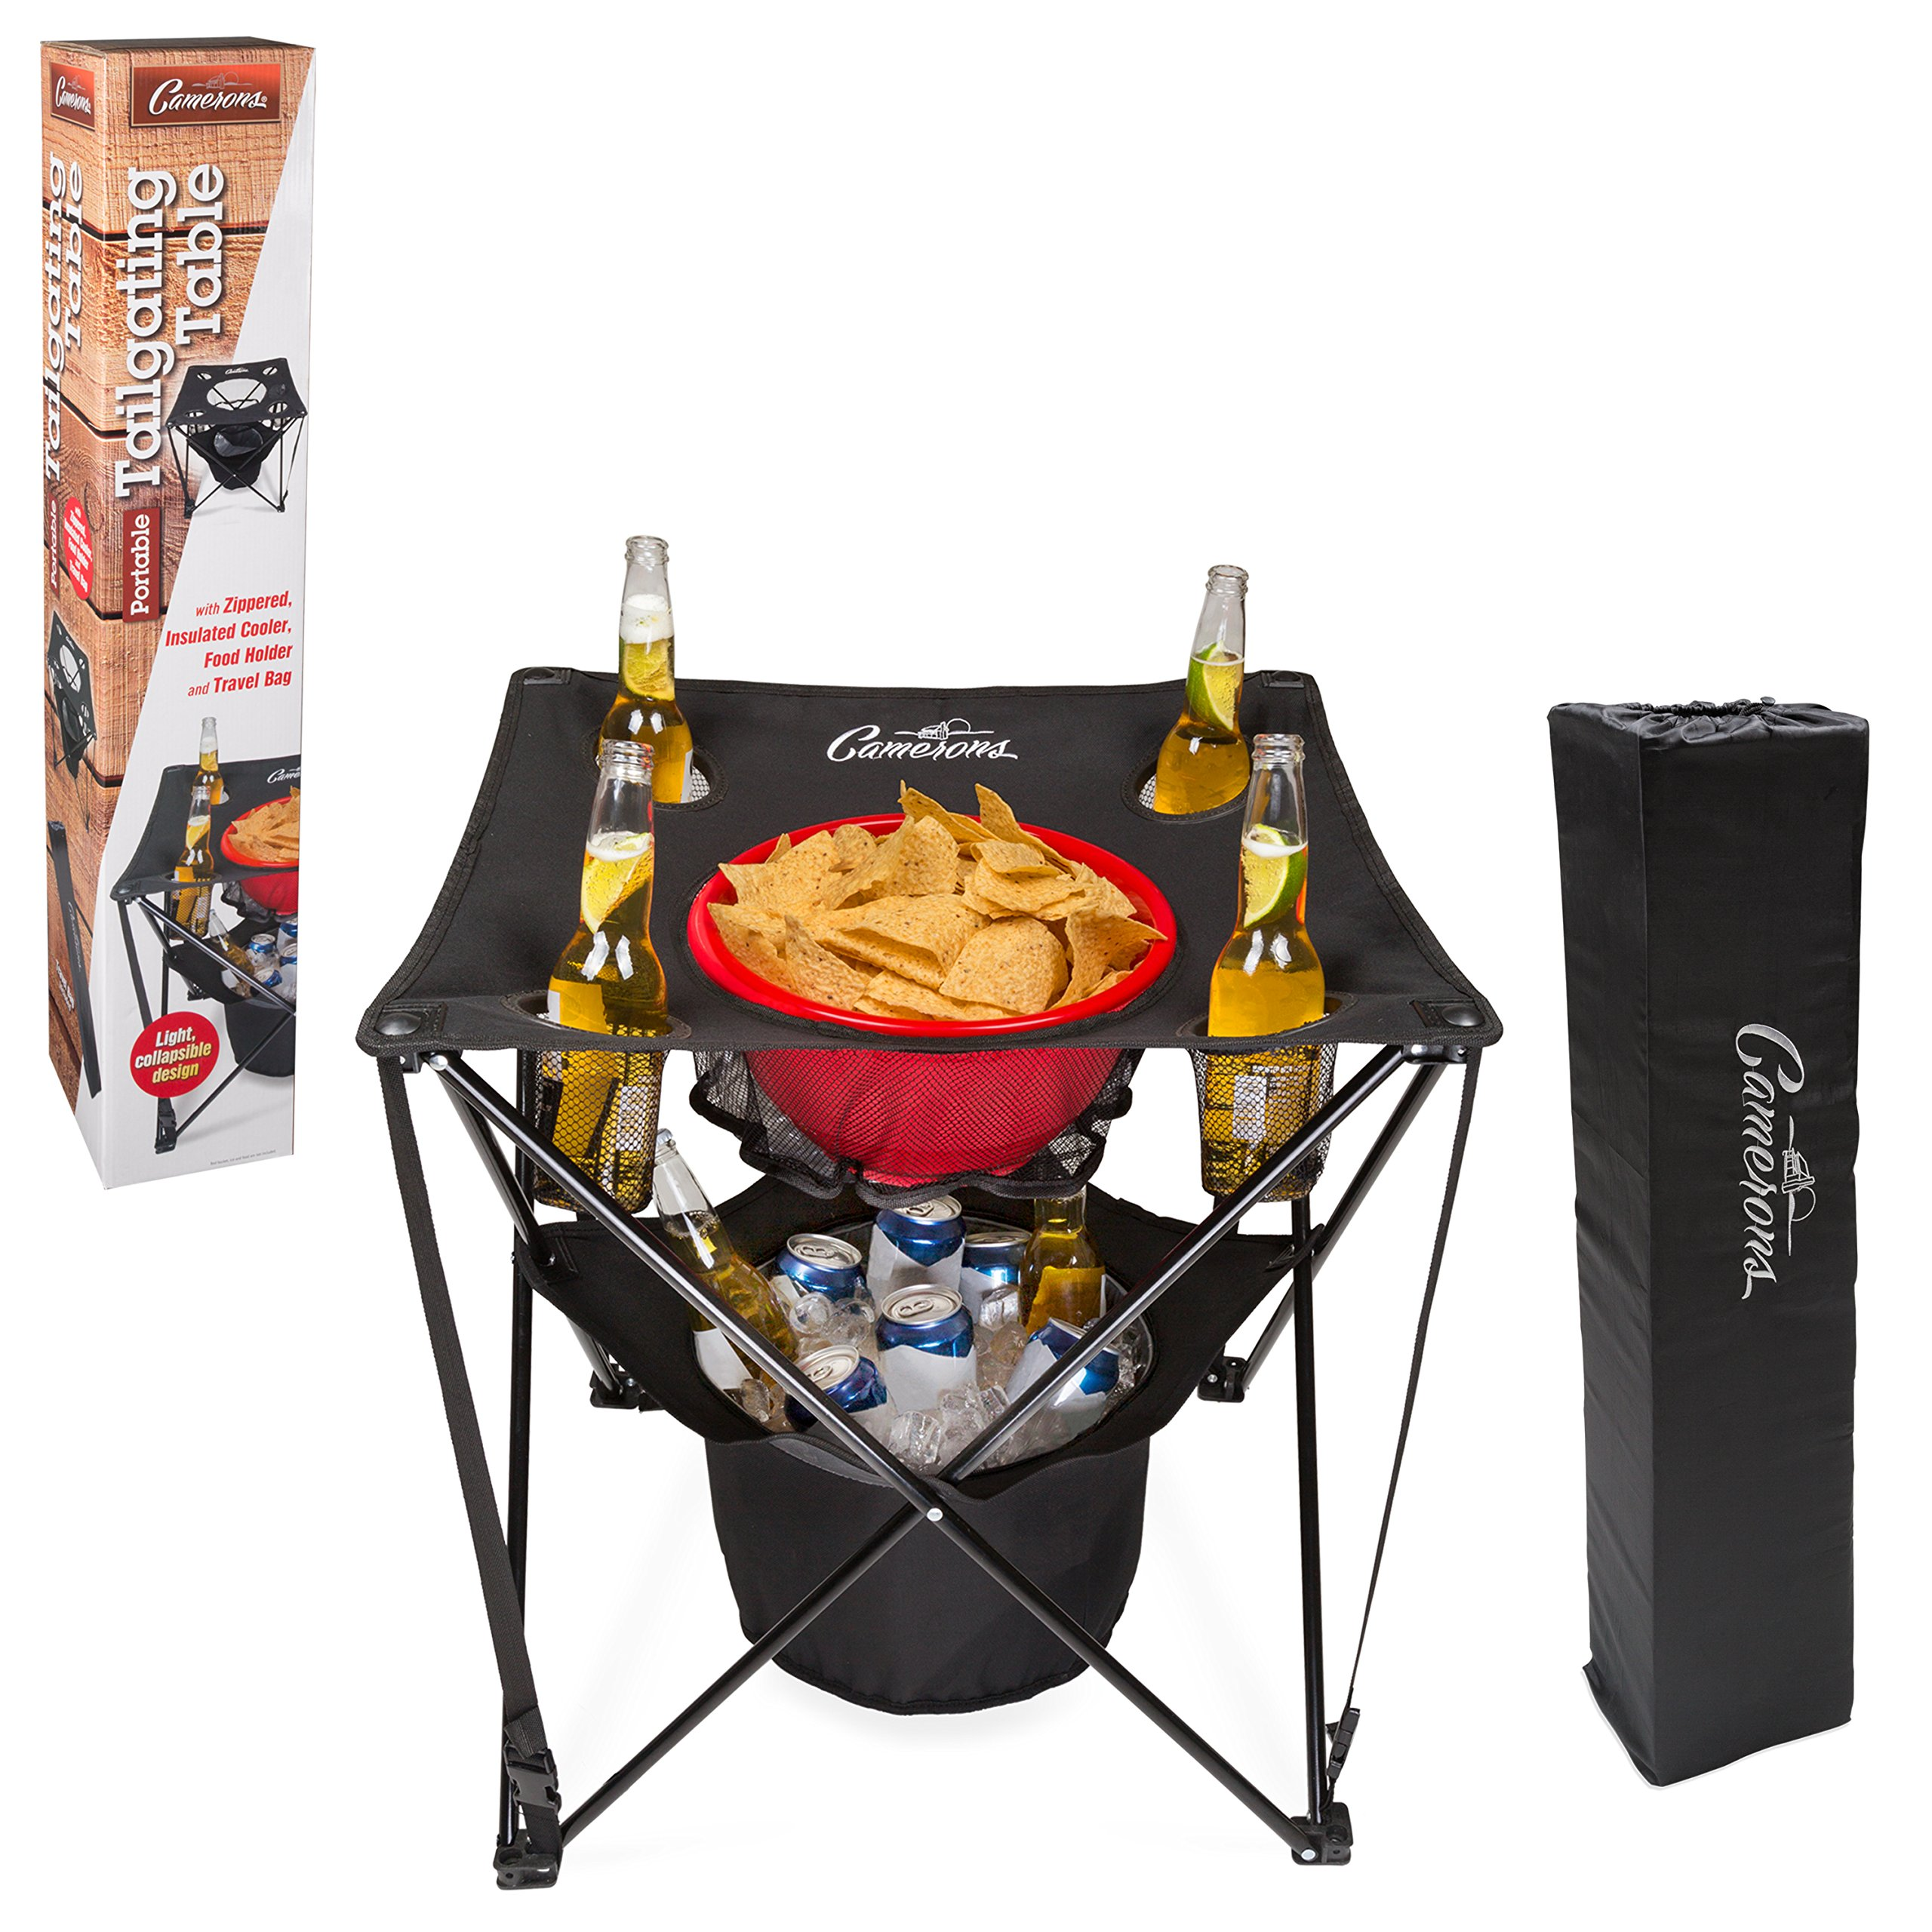 Camerons Products Tailgating Table- Collapsible Folding Camping Table with Insulated Cooler, Food Basket and Travel Bag for Barbecue, Picnic & Tailgate by Camerons Products